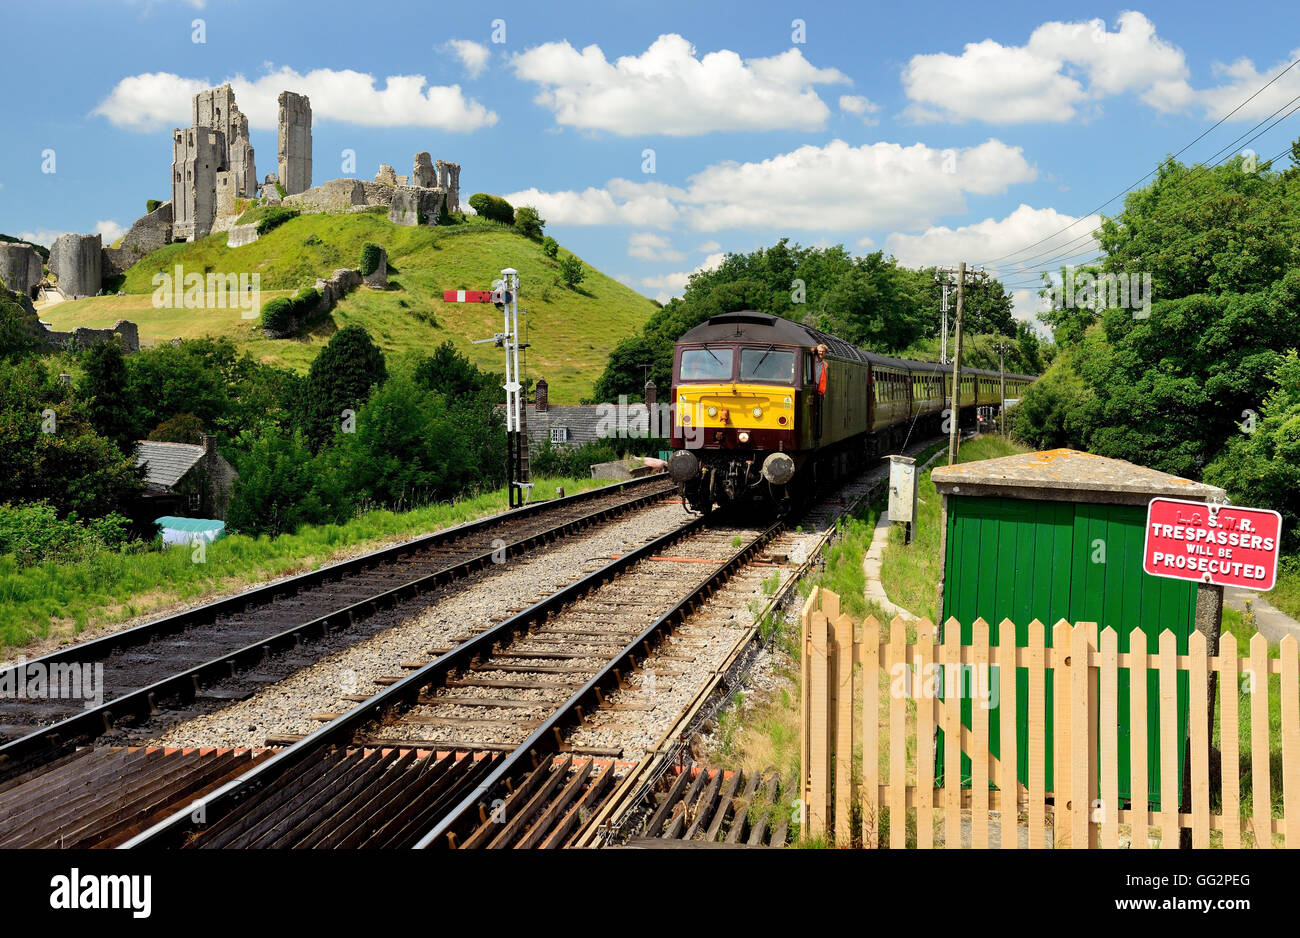 Corfe Castle beside the Swanage Railway. Seen from the platform as a special train approaches the station. - Stock Image